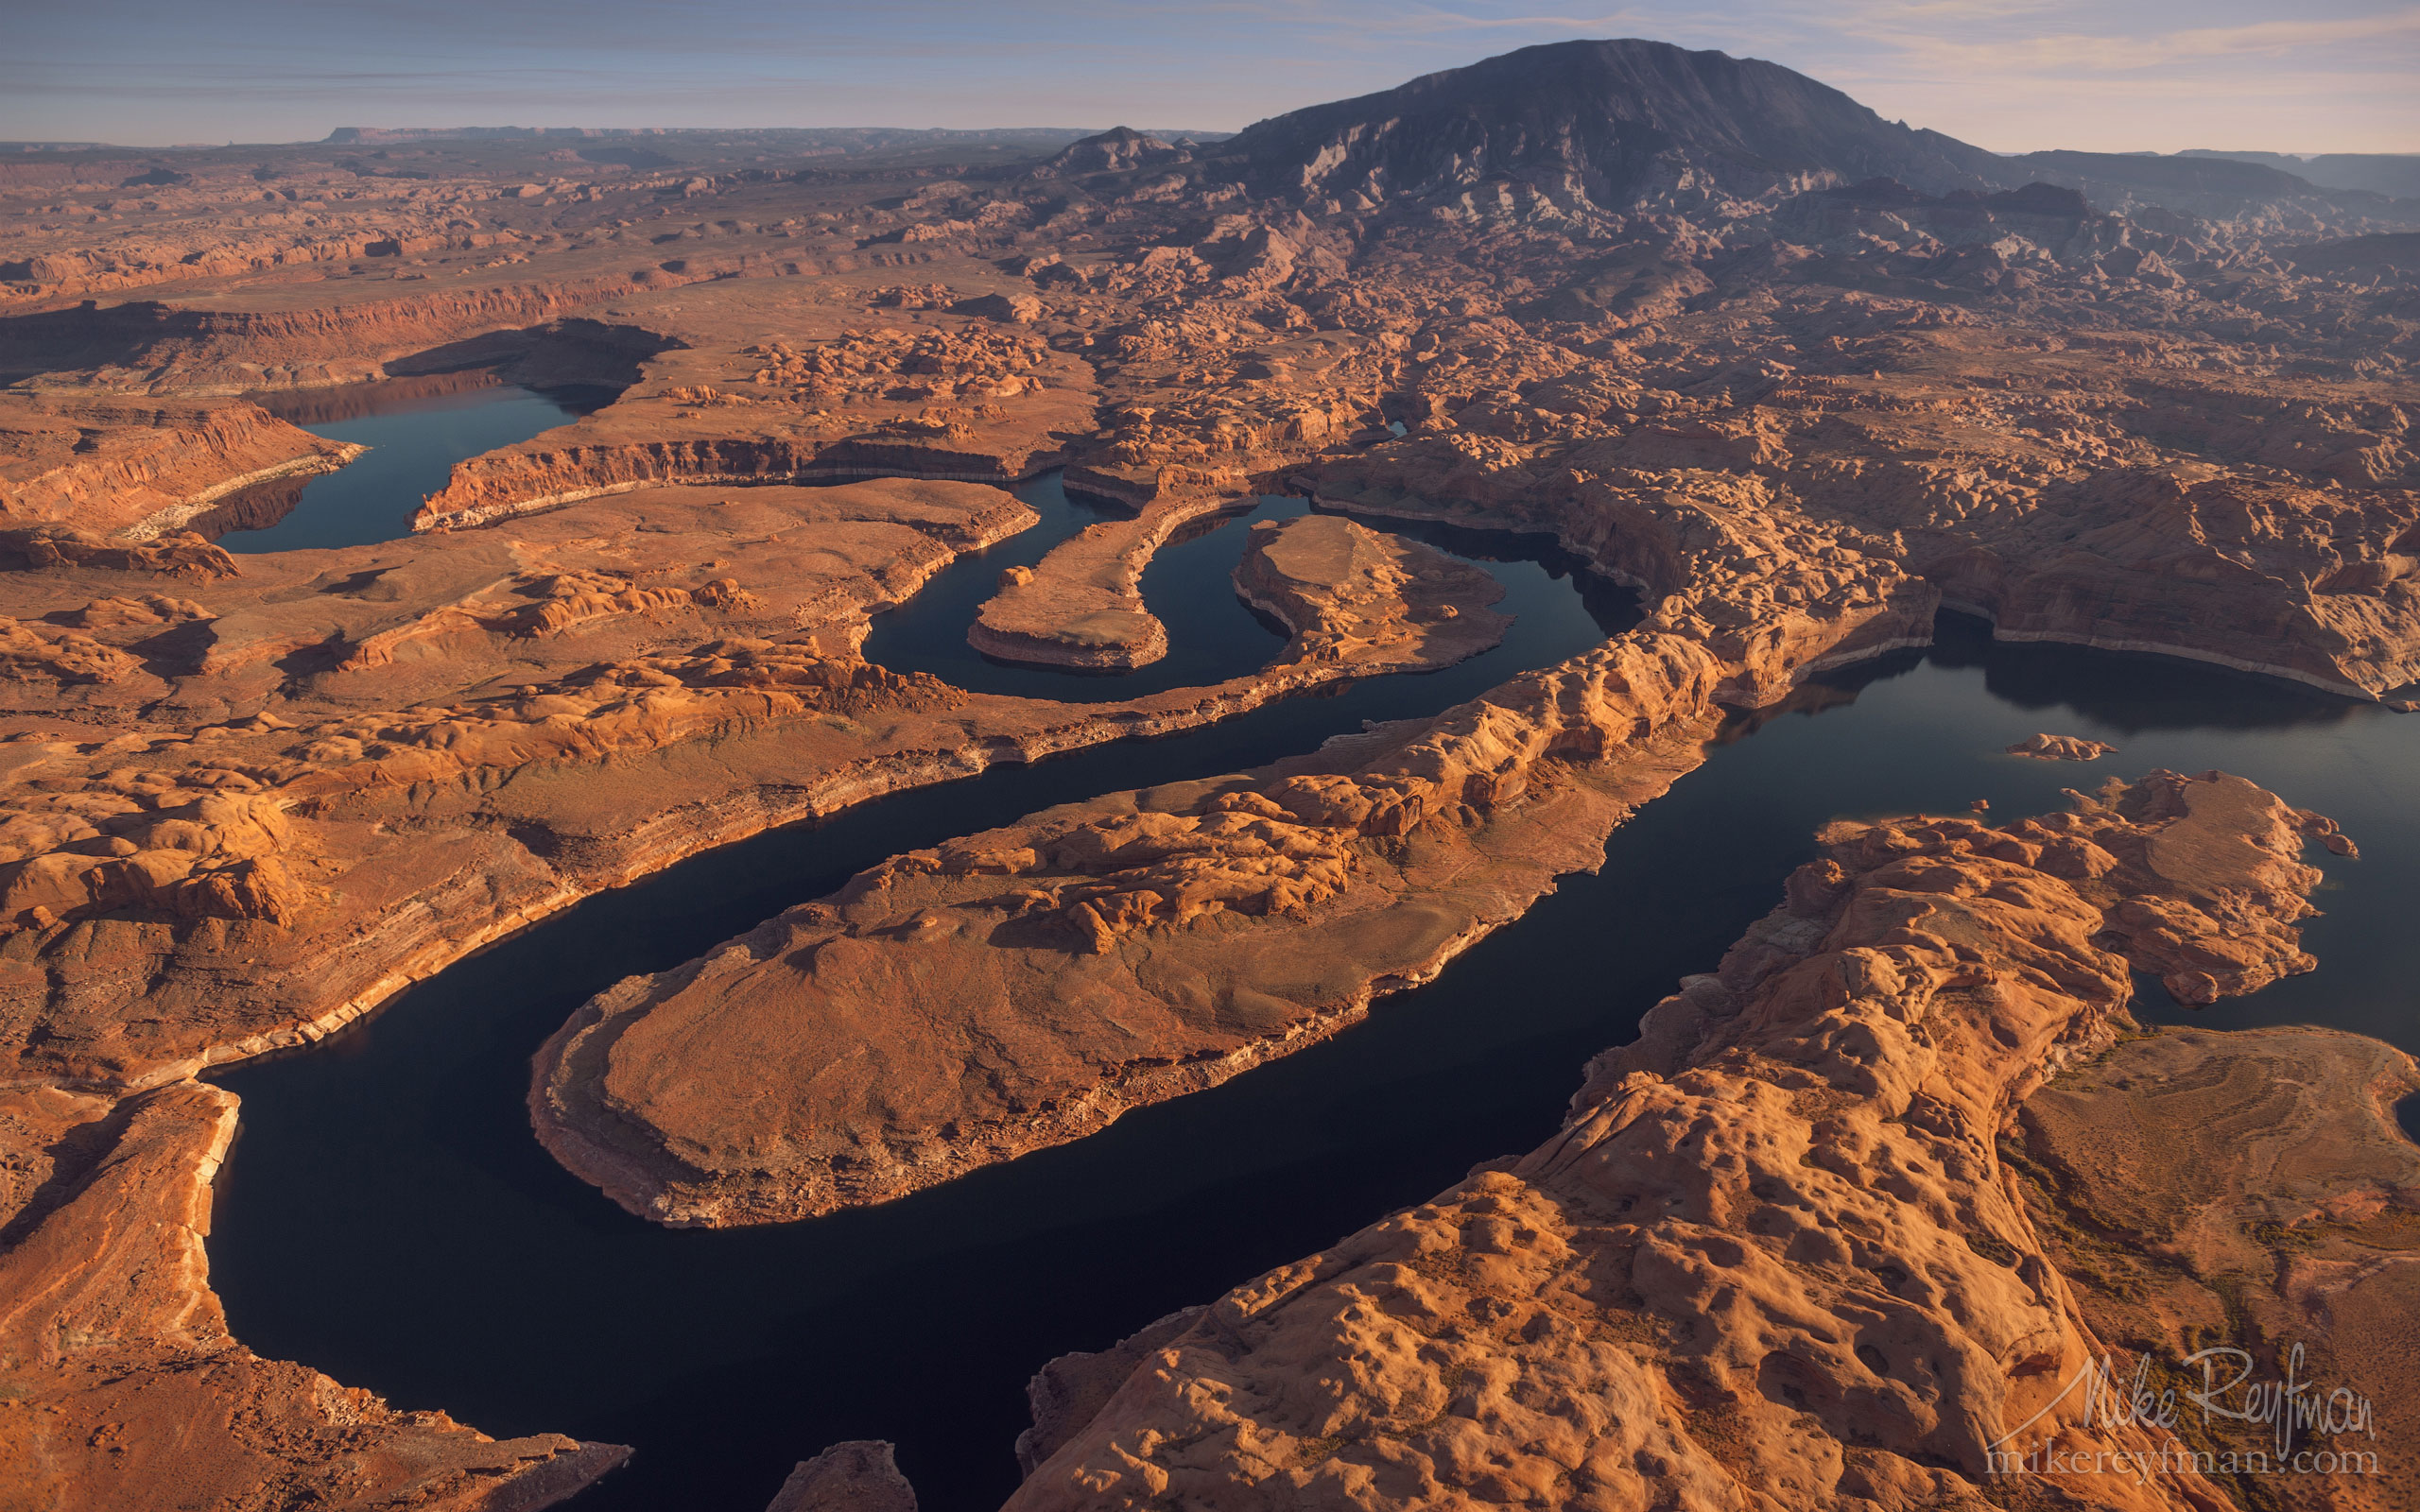 Confluence of San Juan & Colorado Rivers. Glen Canyon NRA, Lake Powell, Utah/Arizona, USA. Aerial. 005-LP3_MR29903.jpg - Lake Powell, Glen Canyon NAR. Colorado and Sun Juan Rivers. Utah/Arizona, USA  - Mike Reyfman Photography